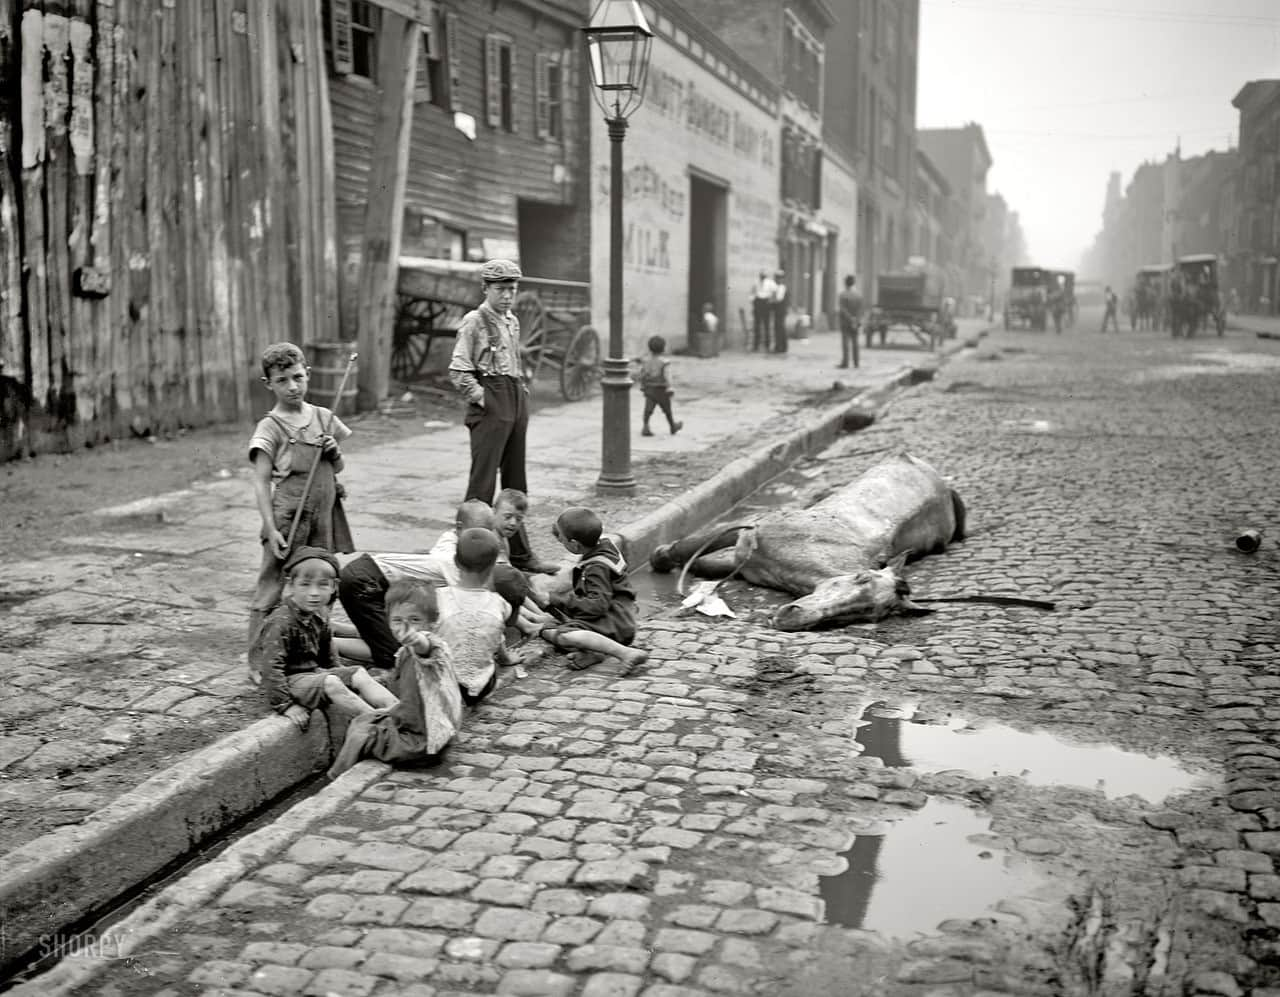 Dead horse left in the gutter, ca 1900